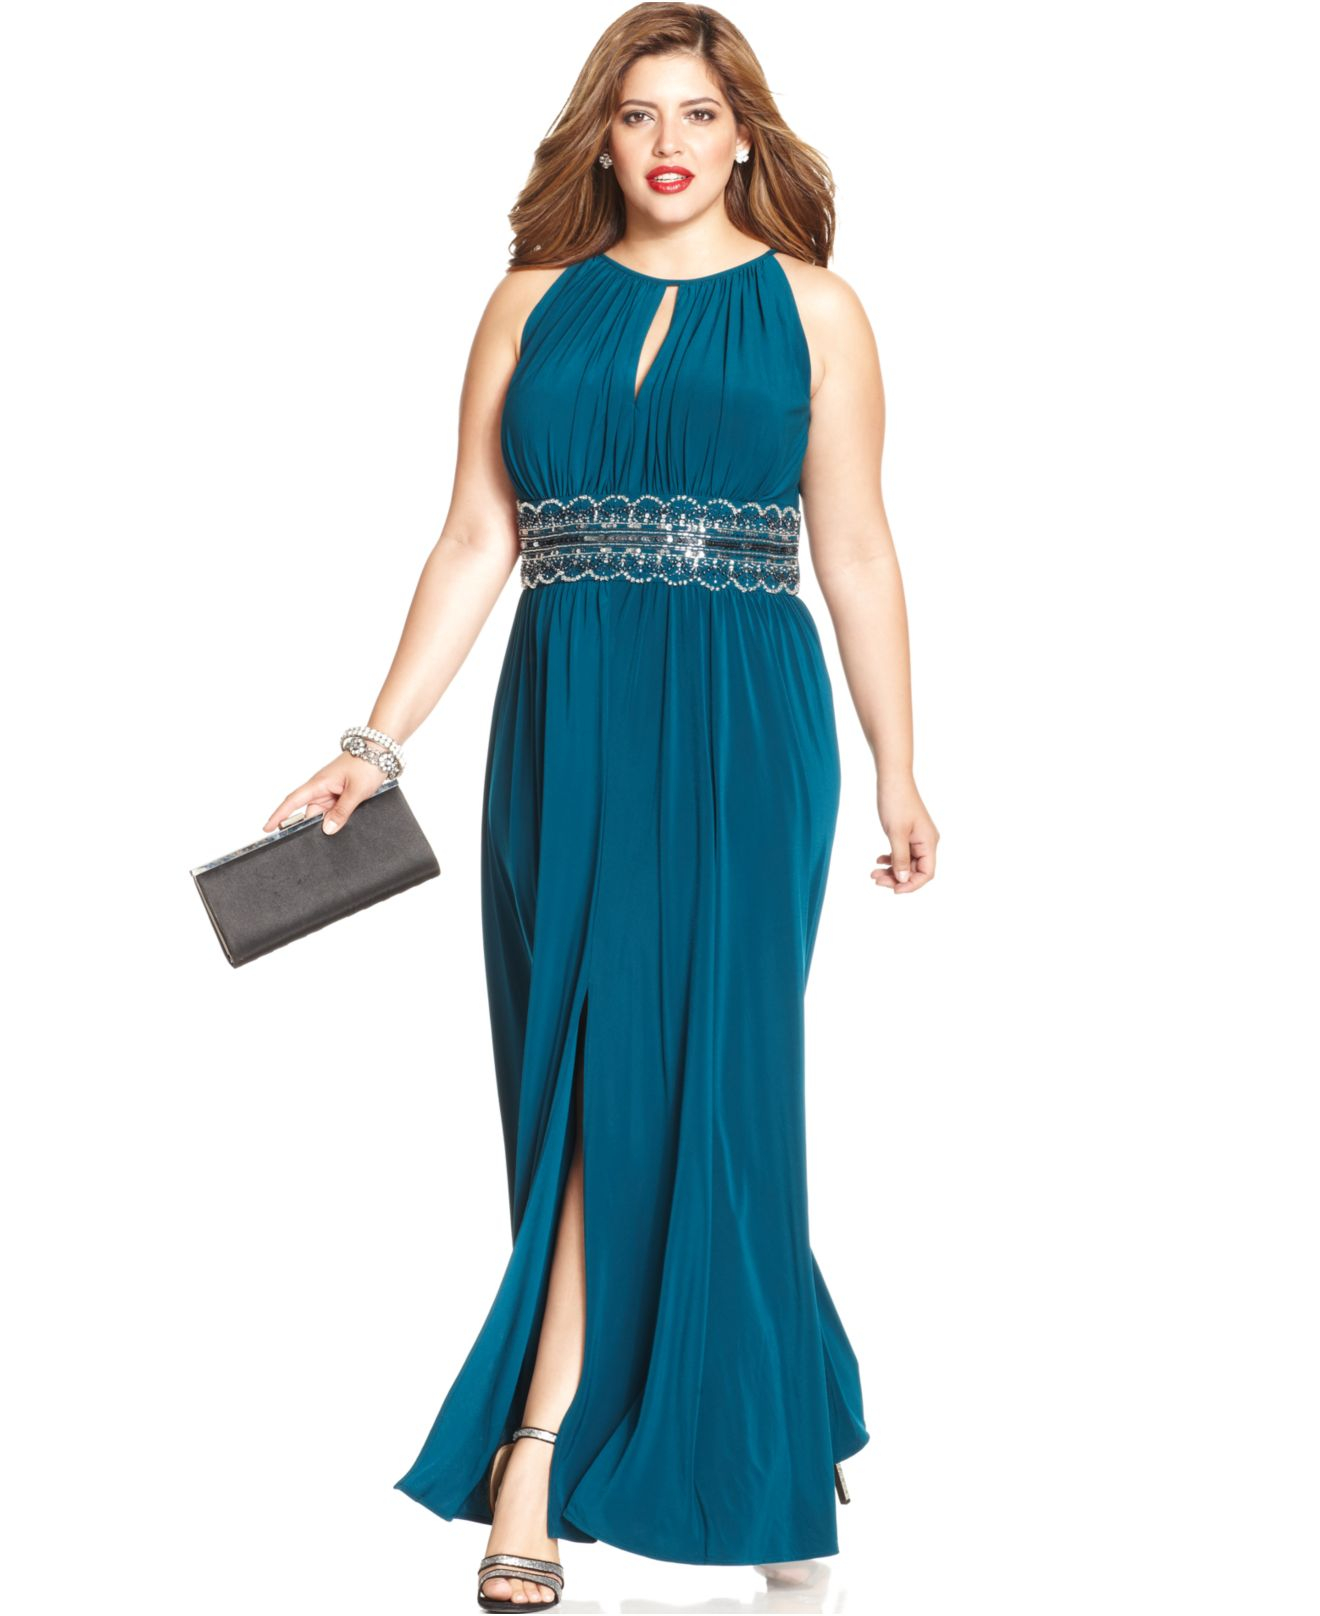 Lyst - R & M Richards R&m Richards Plus Size Sleeveless Beaded Gown ...